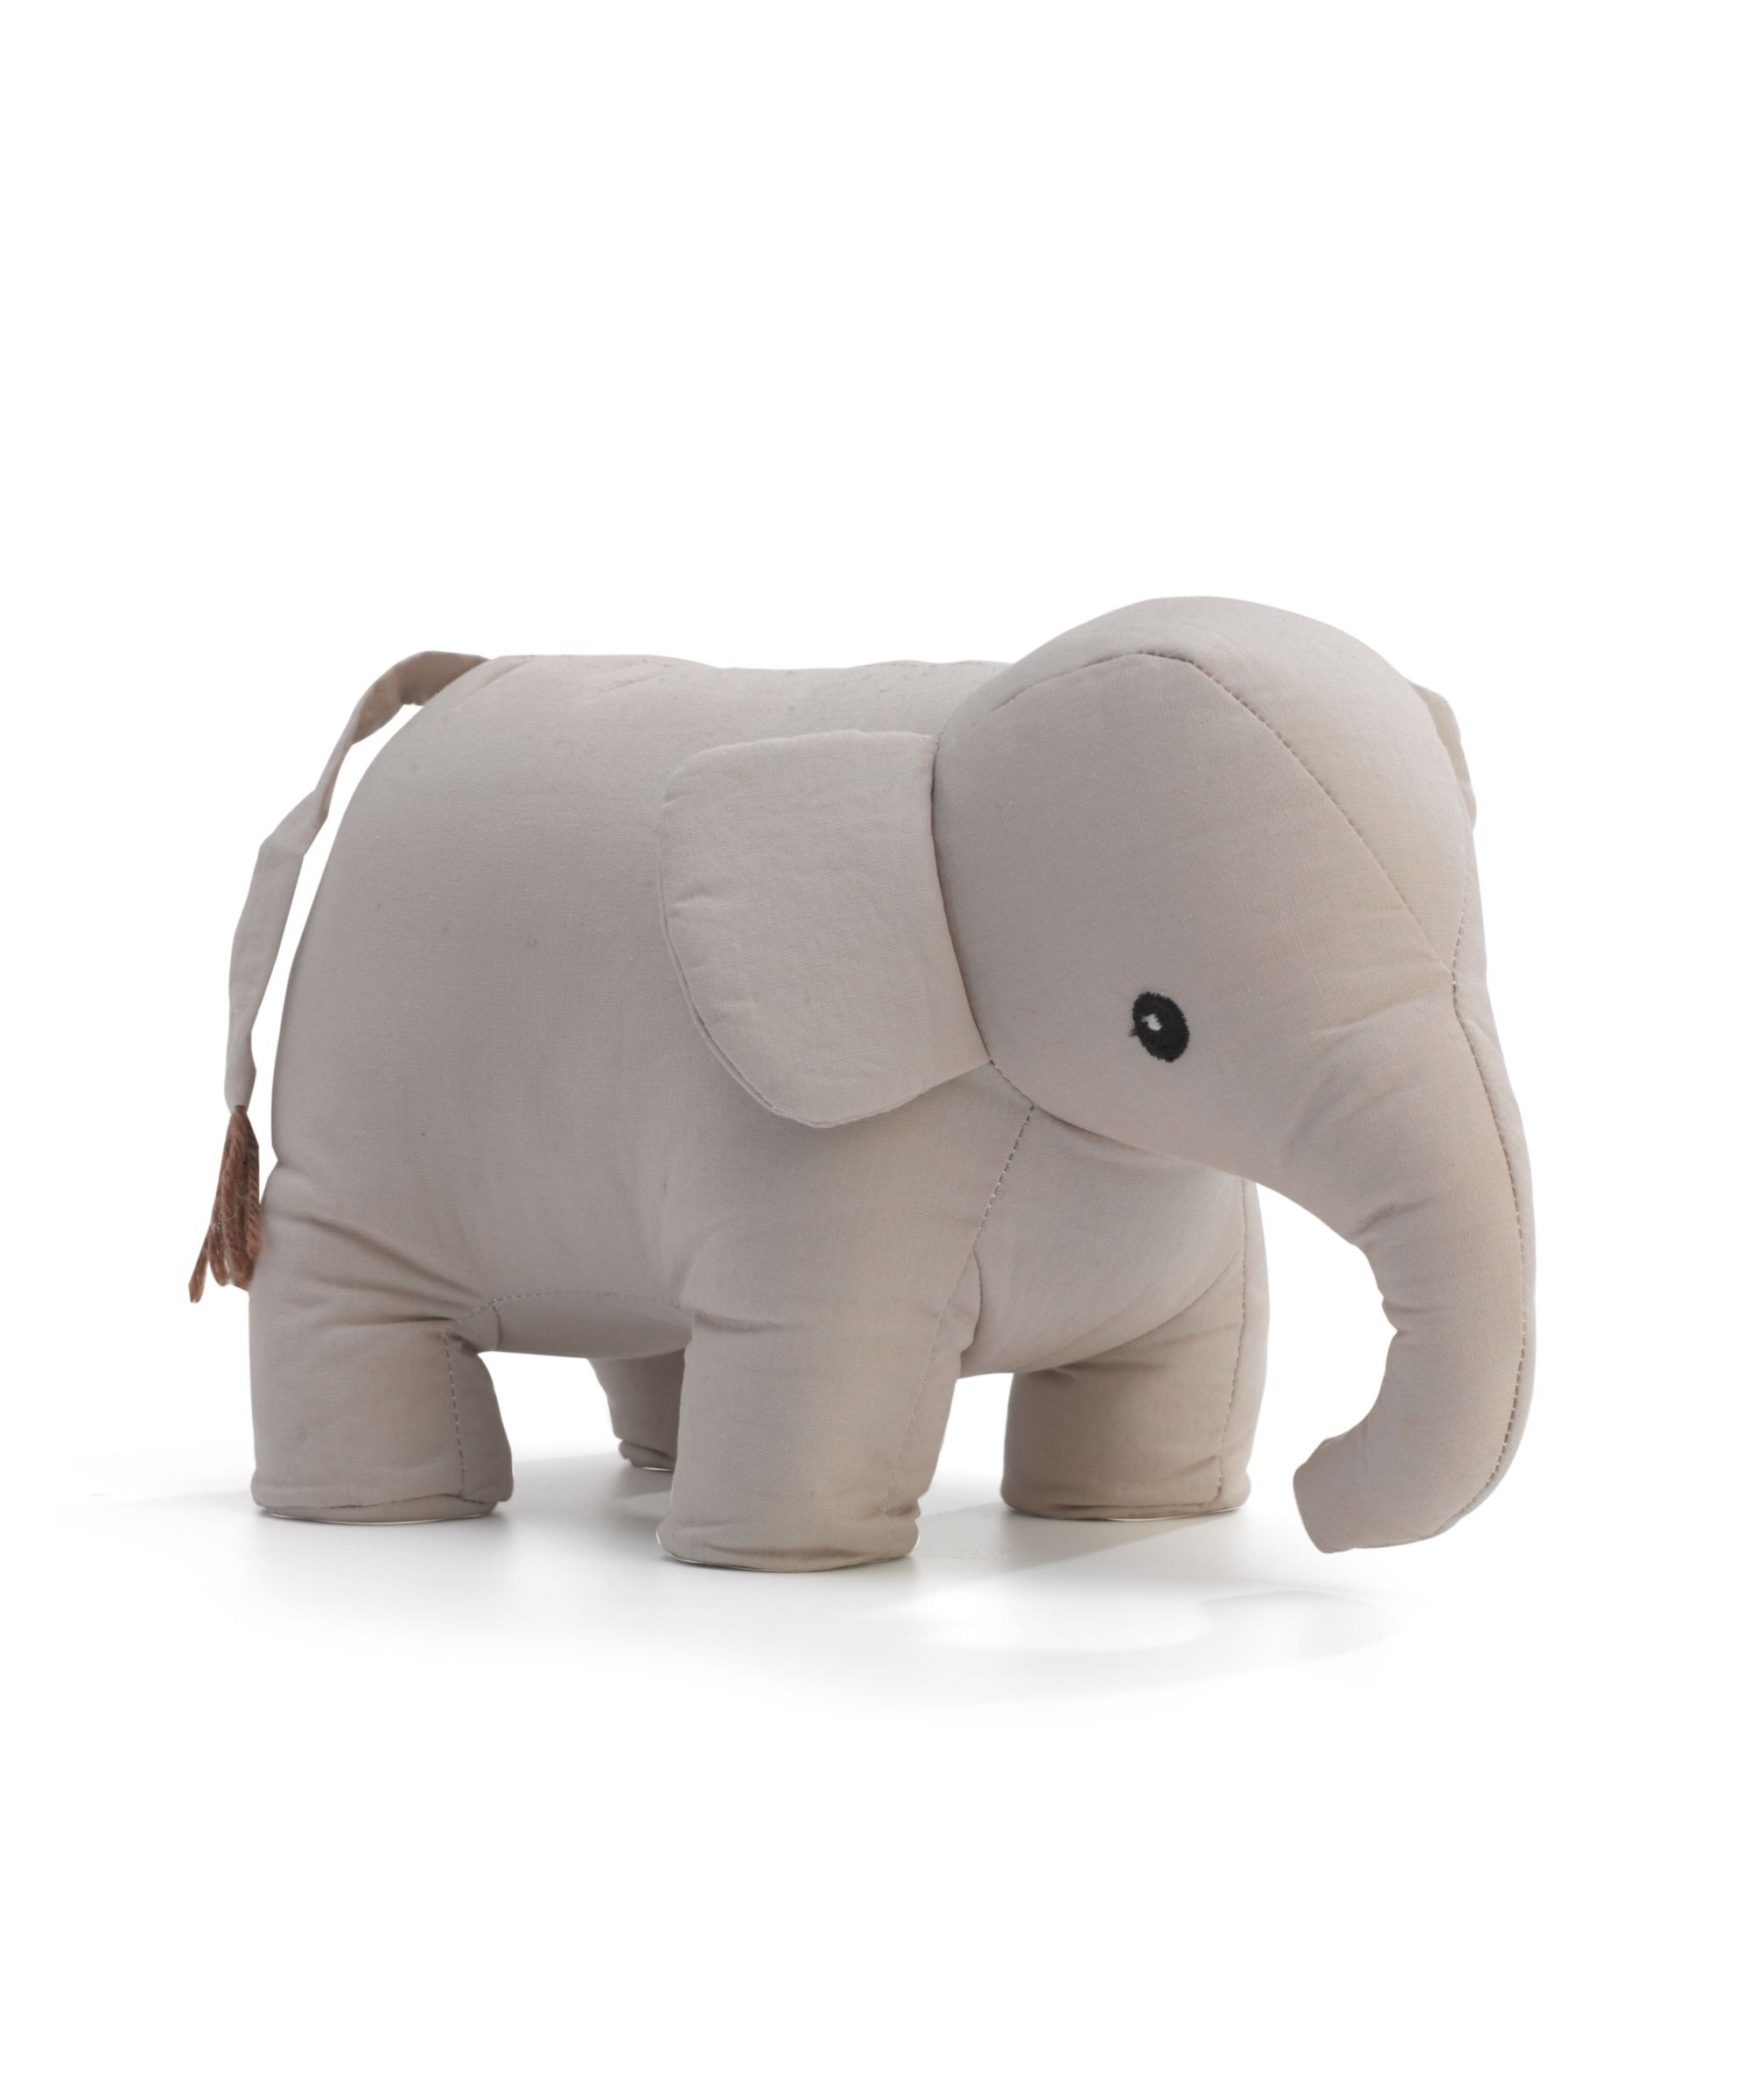 Awesome Mothercare Tusk Elephant Door Stop